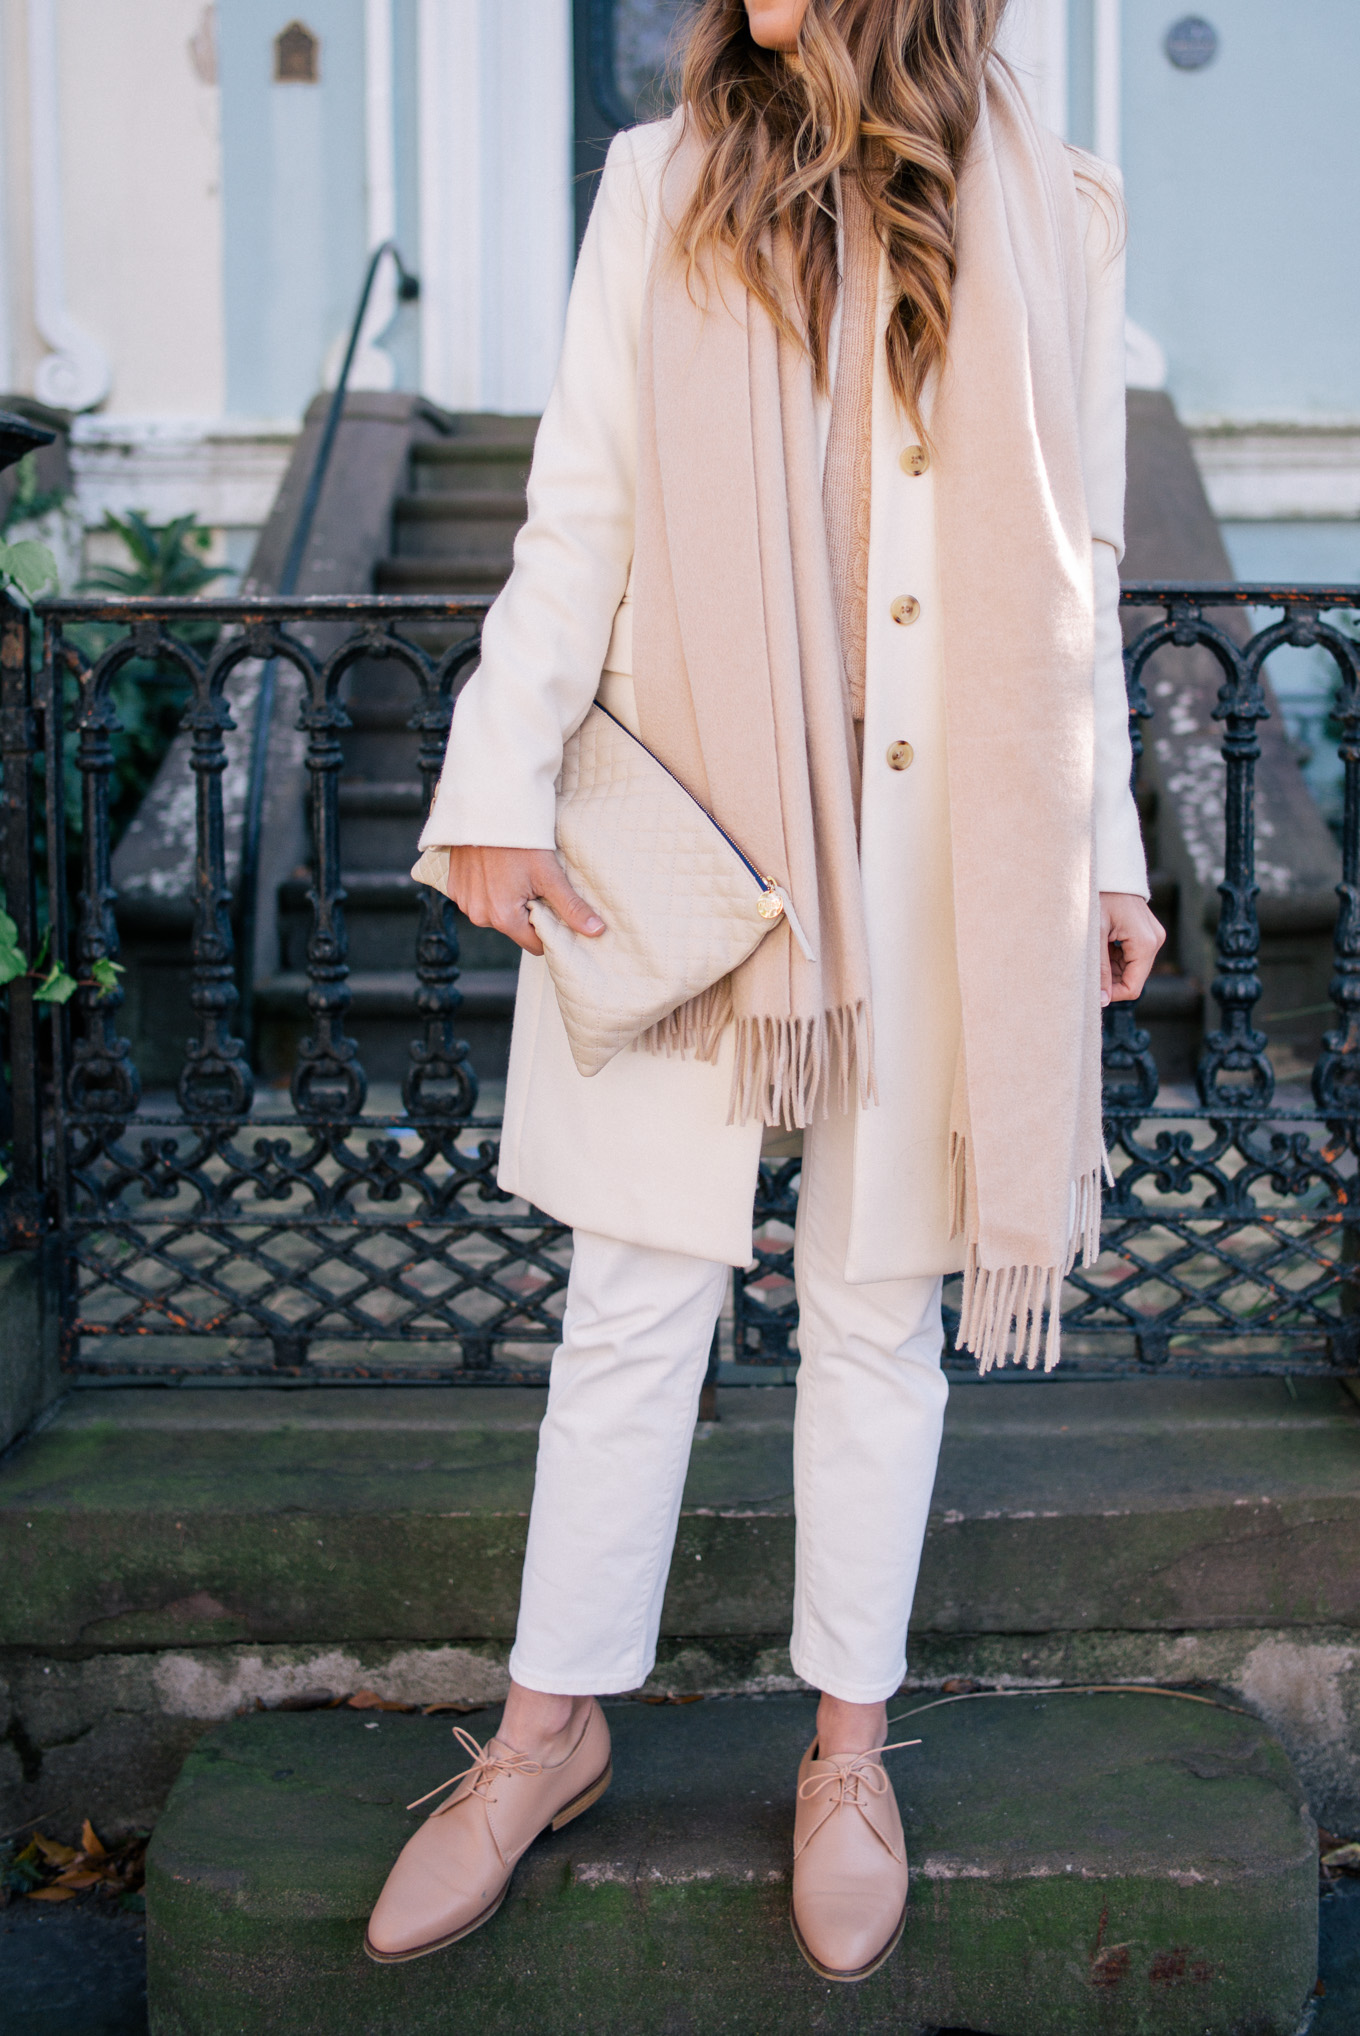 gmg-winter-white-and-cream-outfit-1000663